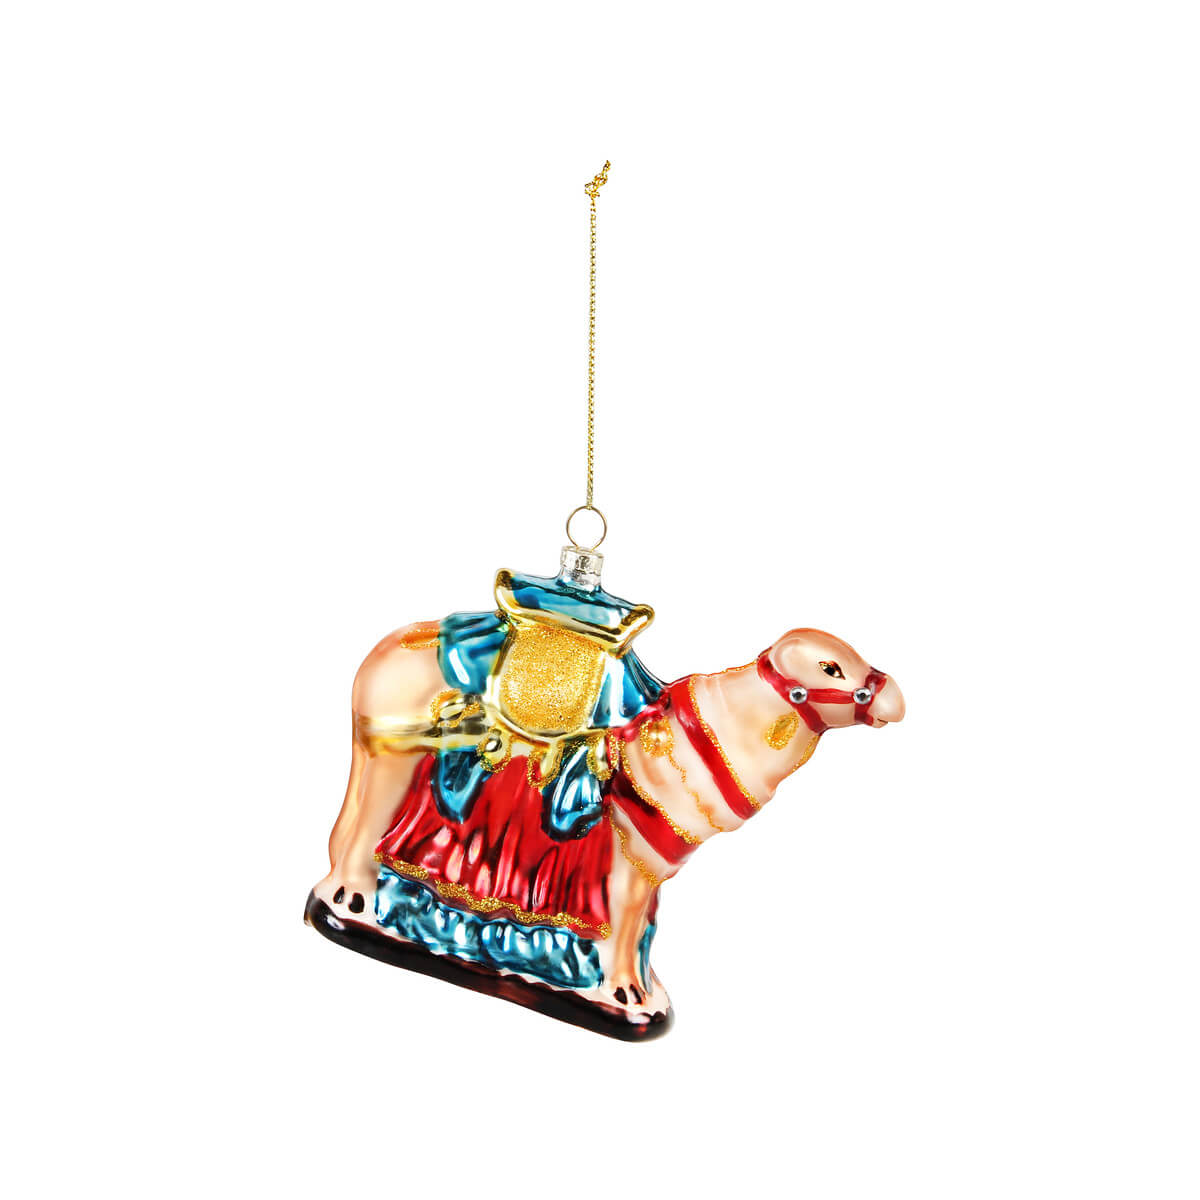 Mme Bovary Christmas Camel Oranment kerstballen glas vintage large handmade retro nature inspired &klevering decoration xmas